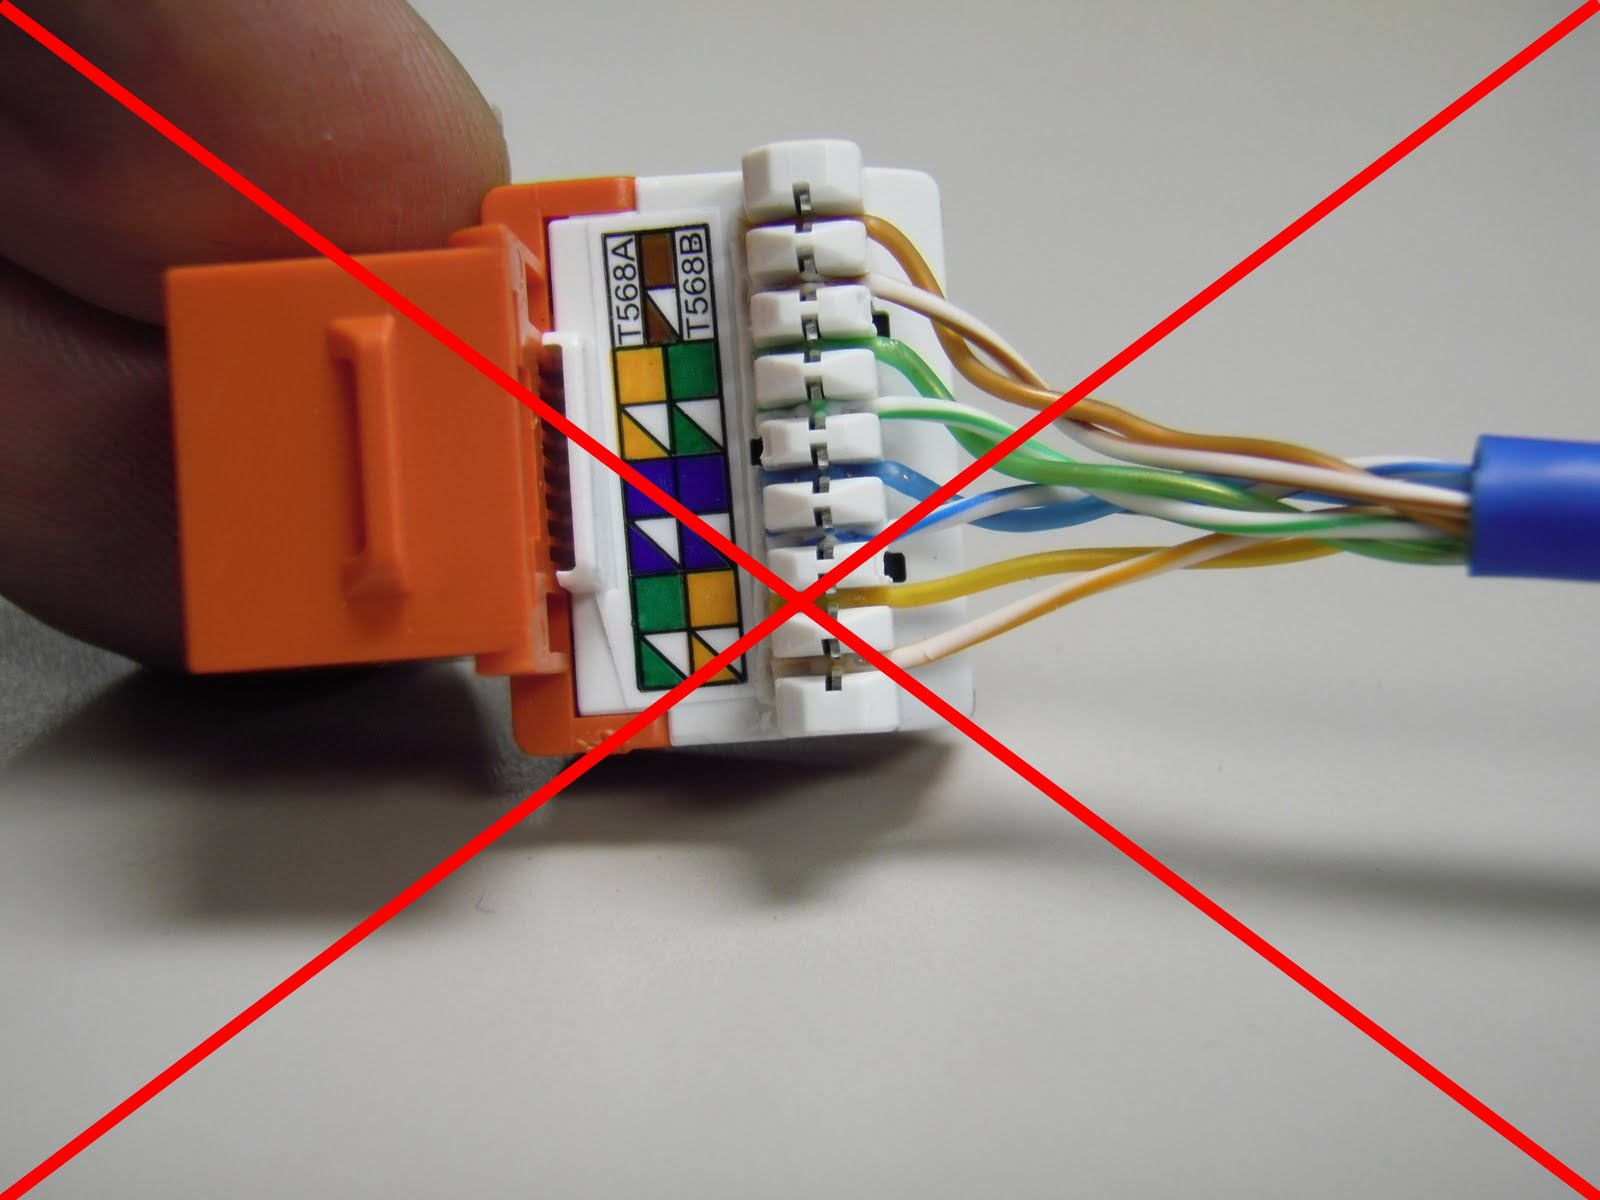 CAT5E+ER+JACK+PUNCHED+WRONG+RED+X the trench how to punch down cat5e cat6 keystone jacks ethernet wall jack wiring diagram at creativeand.co